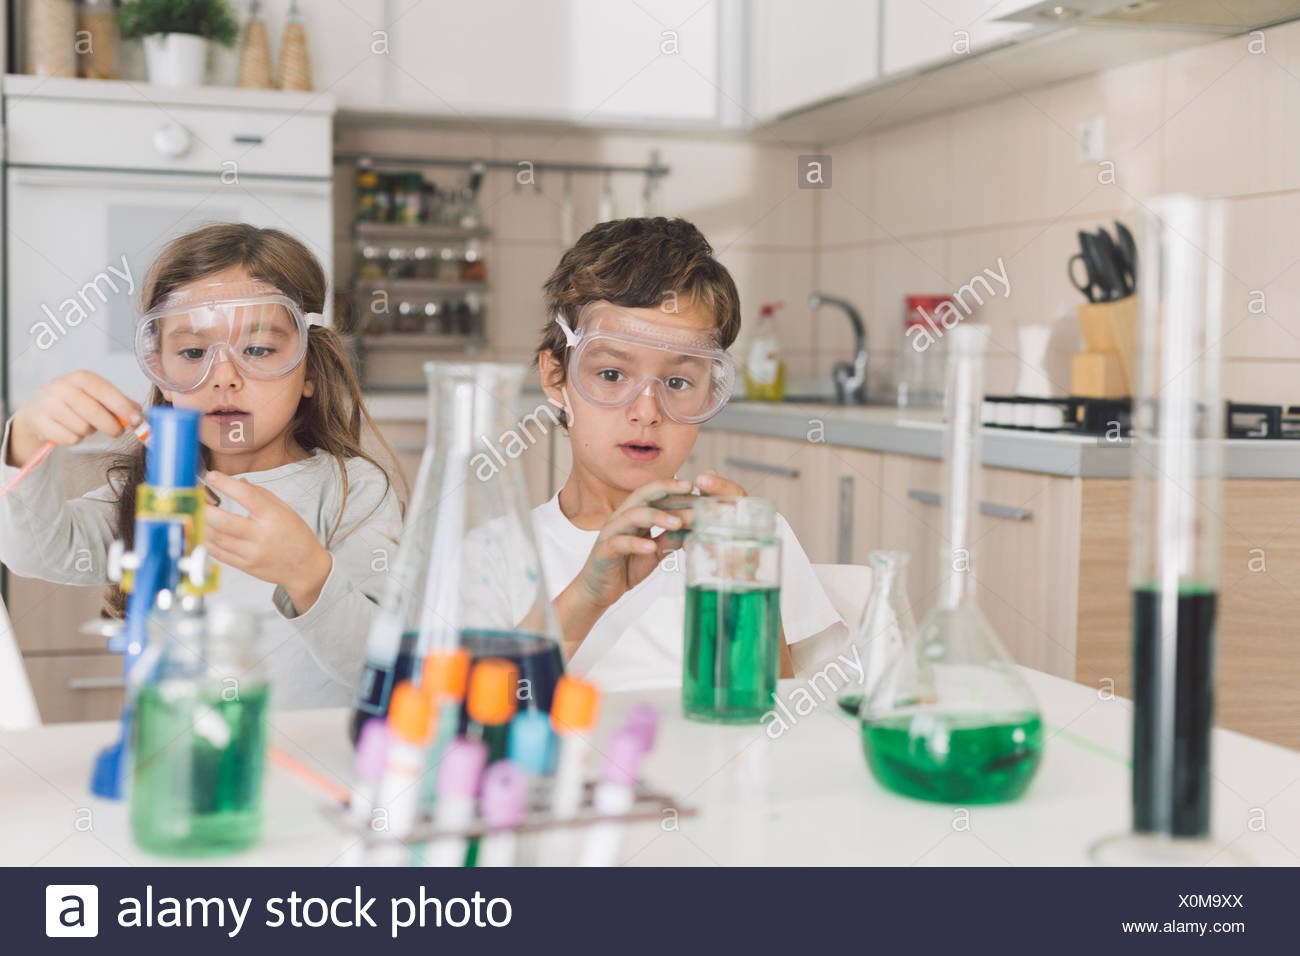 Boy and girl playing science experiments at home Stock Photo